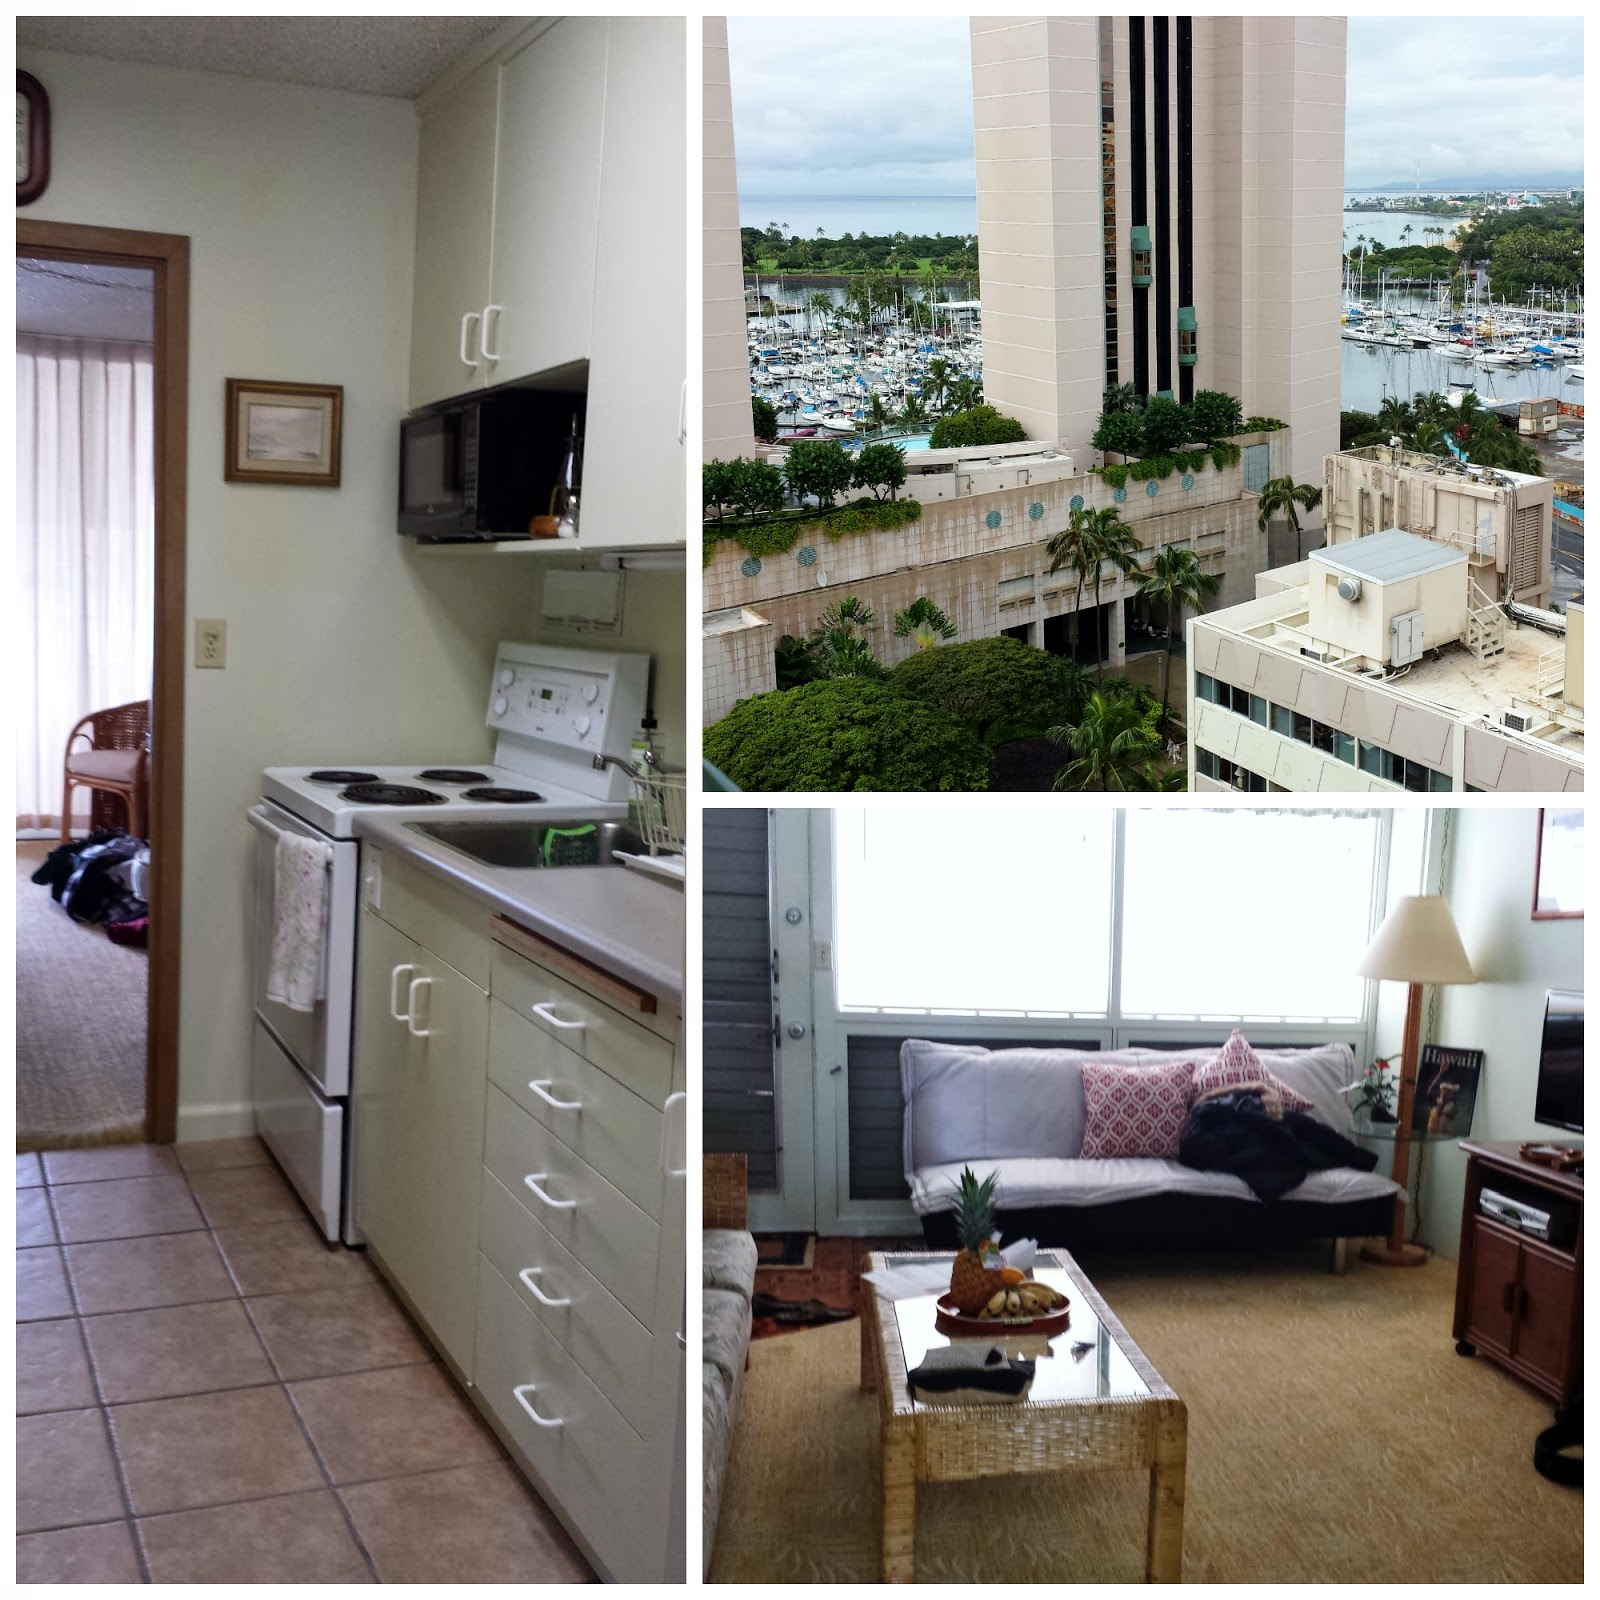 Our Honolulu condo that we rented on airbnb. Photo: Just J